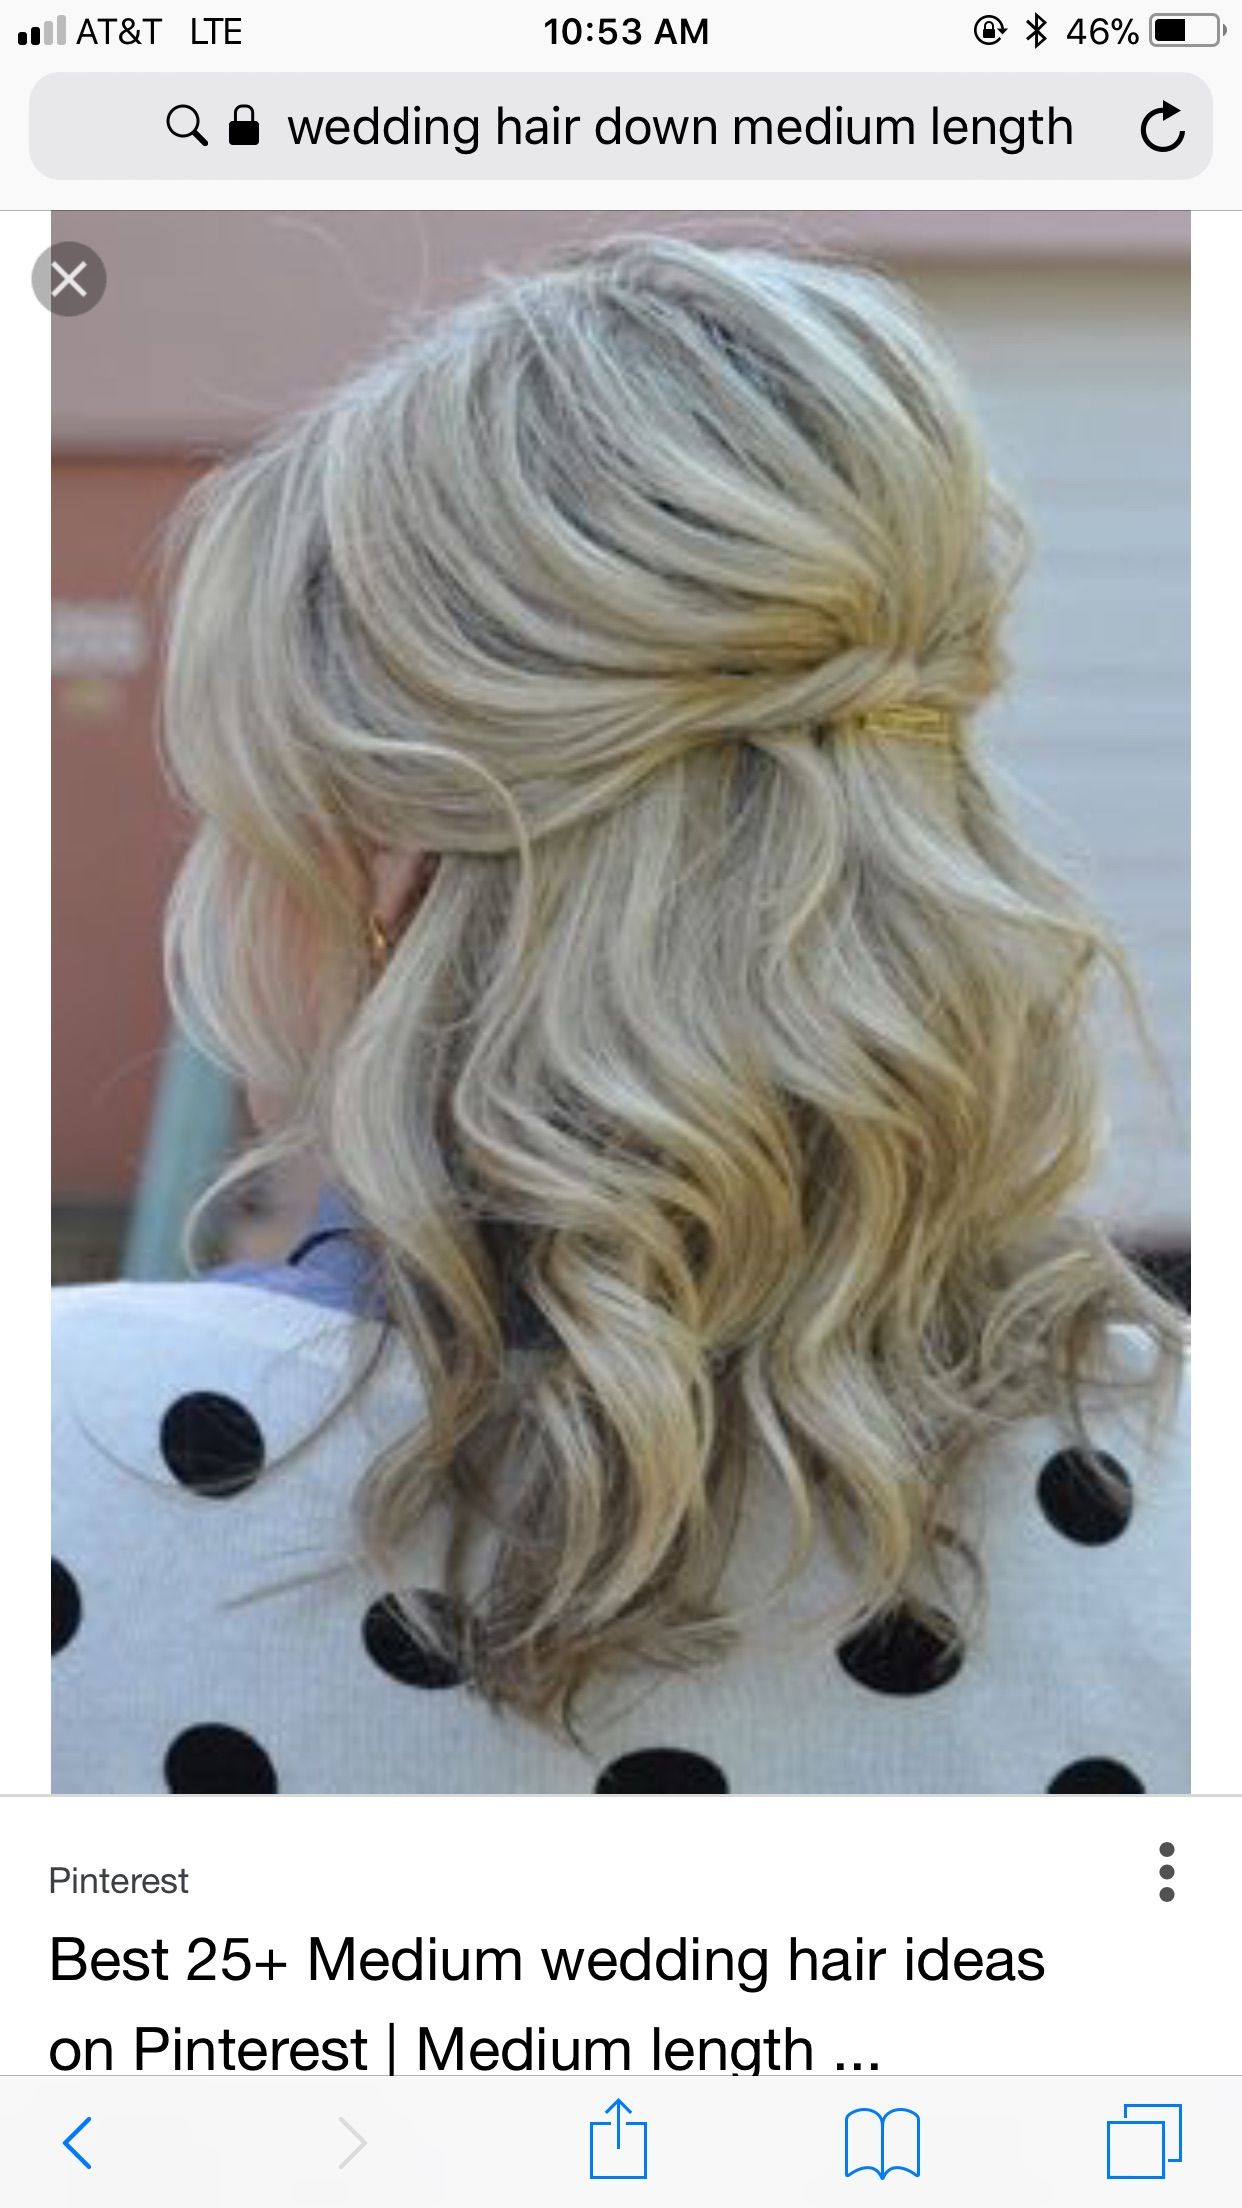 Pin by Bethany Gray on Kev and Bethany | Pinterest | Hair, Wedding ...